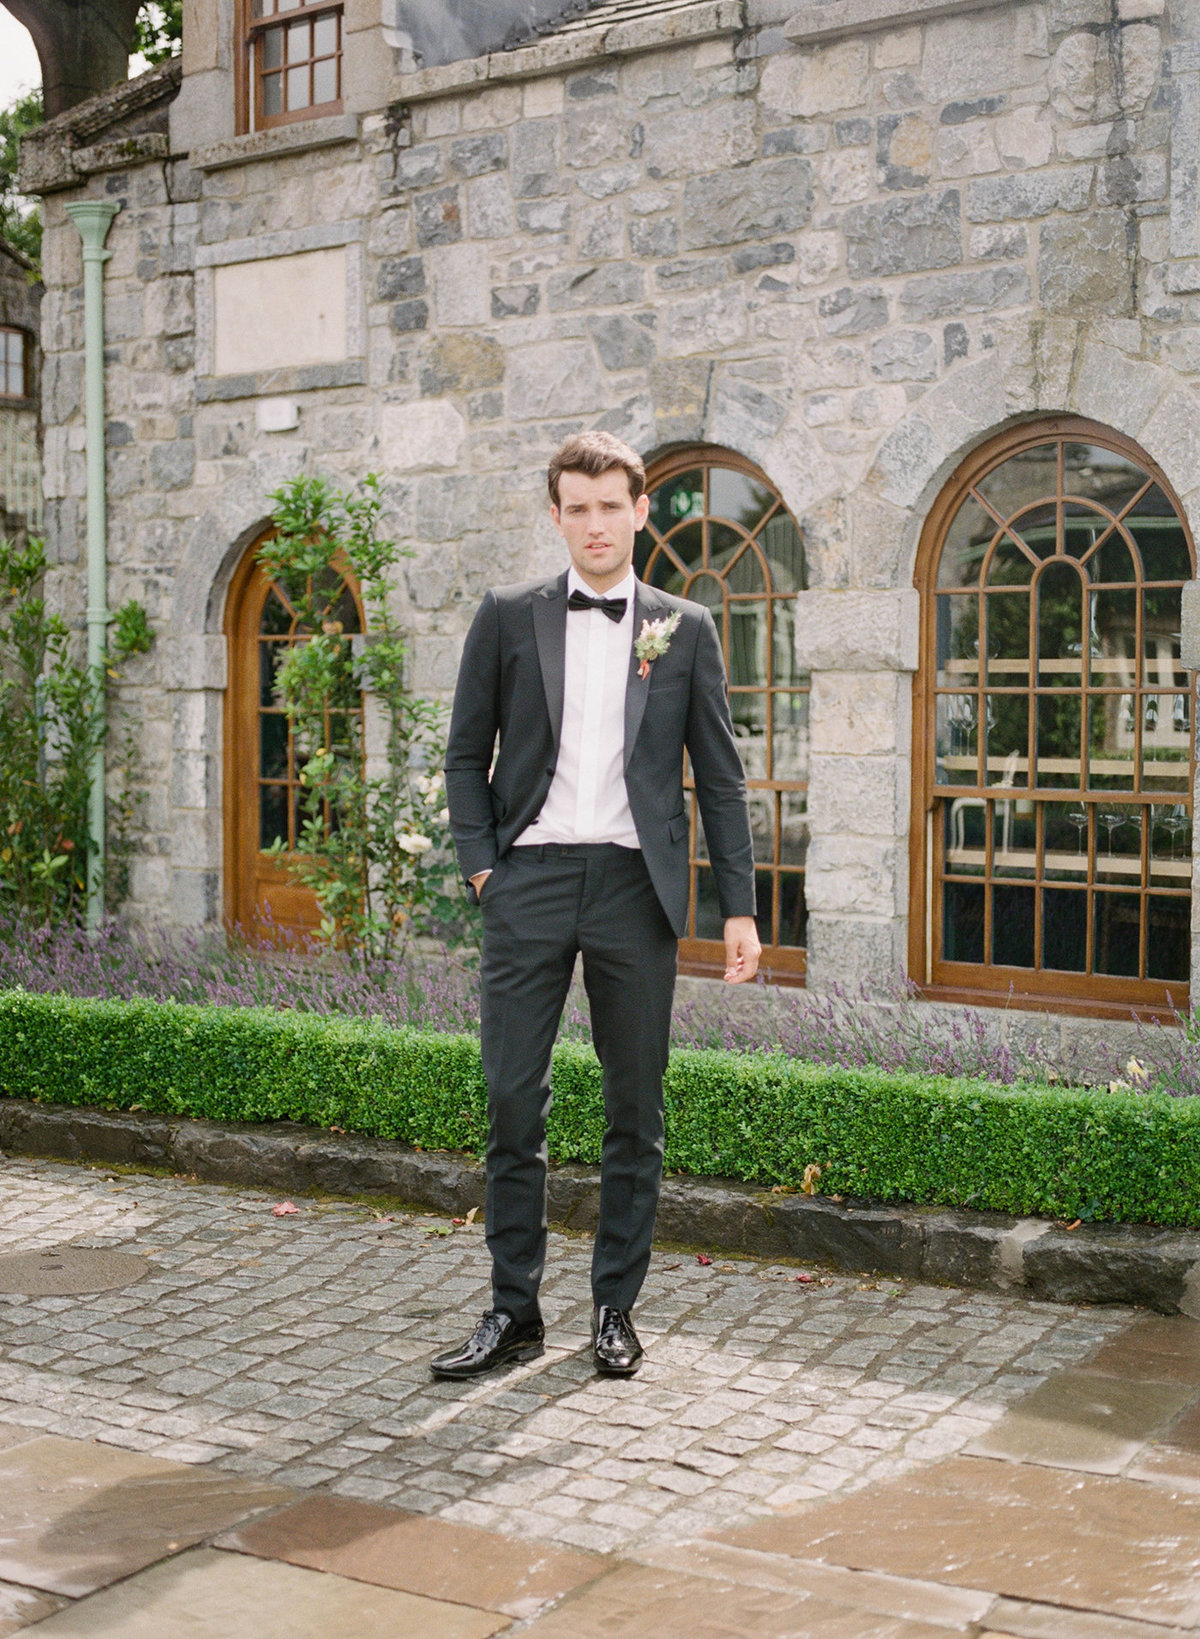 Destination Wedding Photographer - Ireland Editorial - Cliff at Lyons Kildare Ireland - Sarah Sunstrom Photography - 35